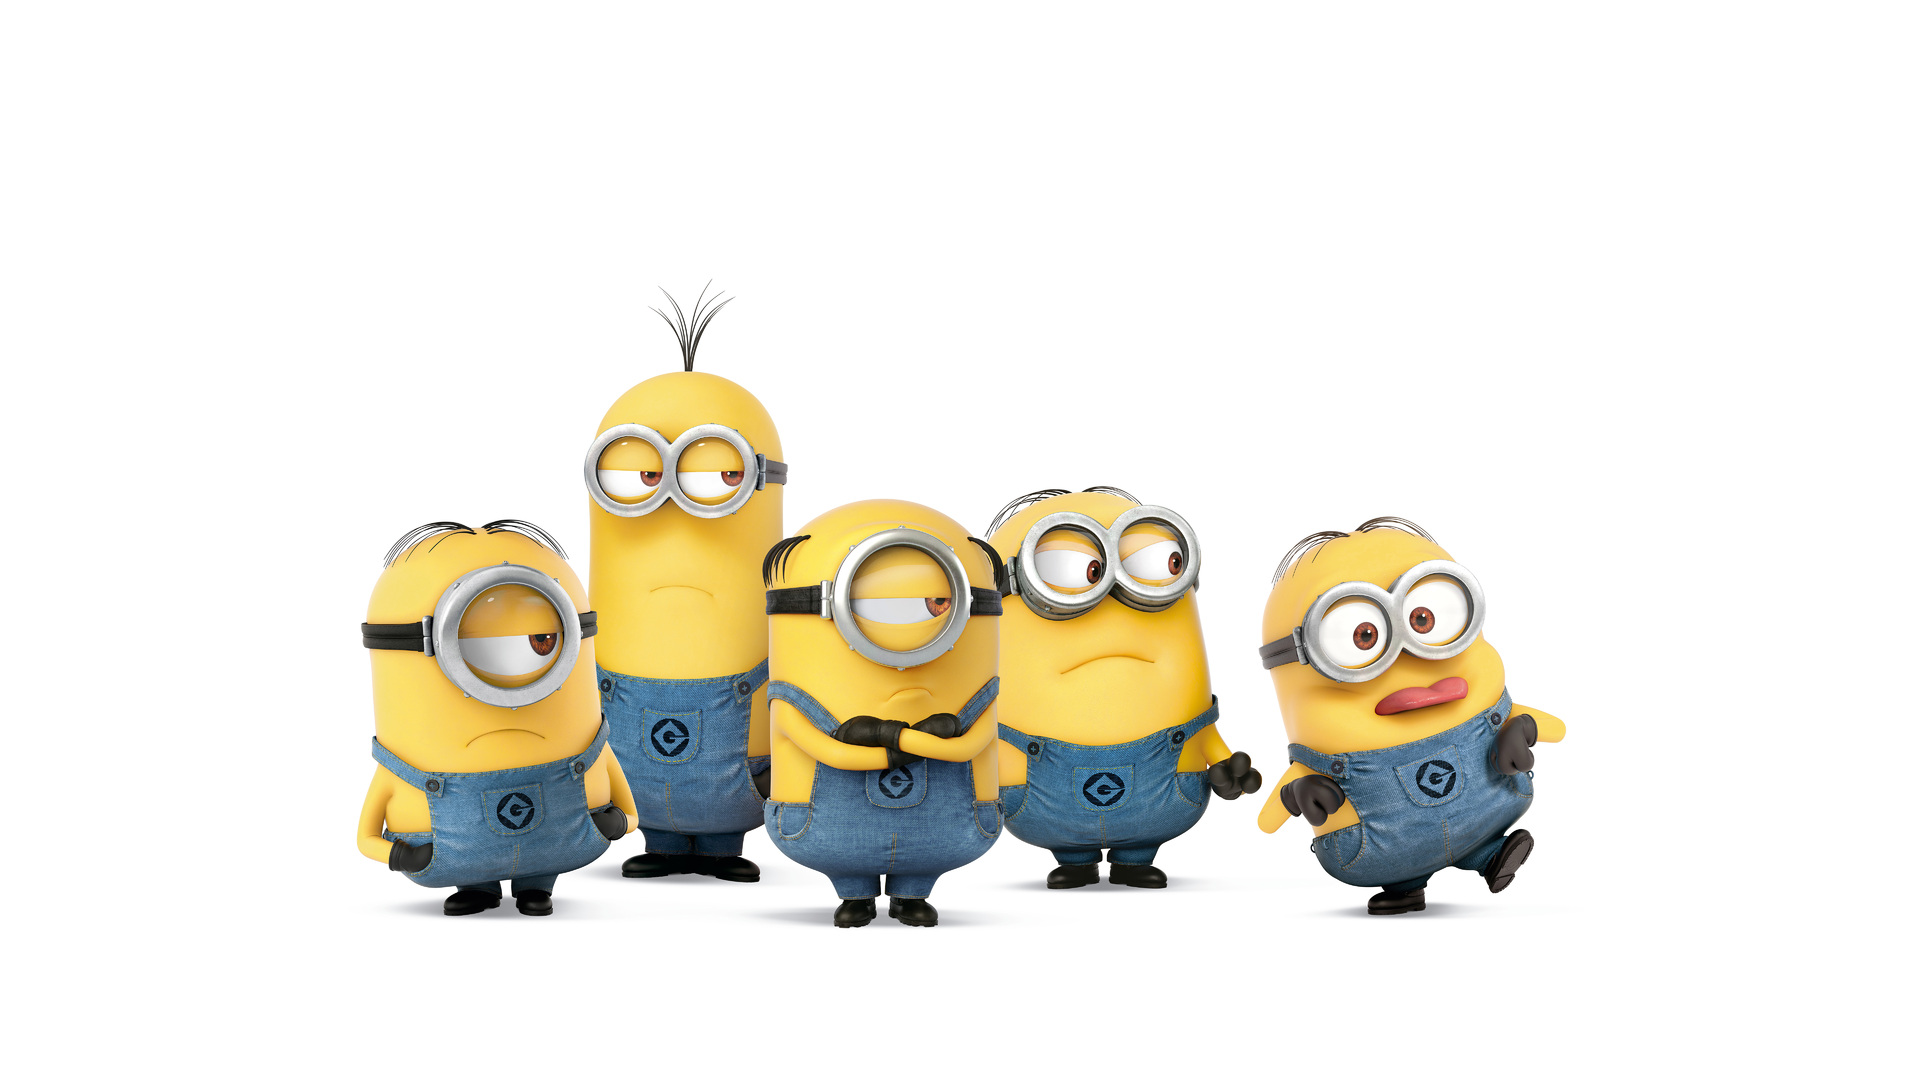 1920x1080 minions 8k laptop full hd 1080p hd 4k wallpapers, images